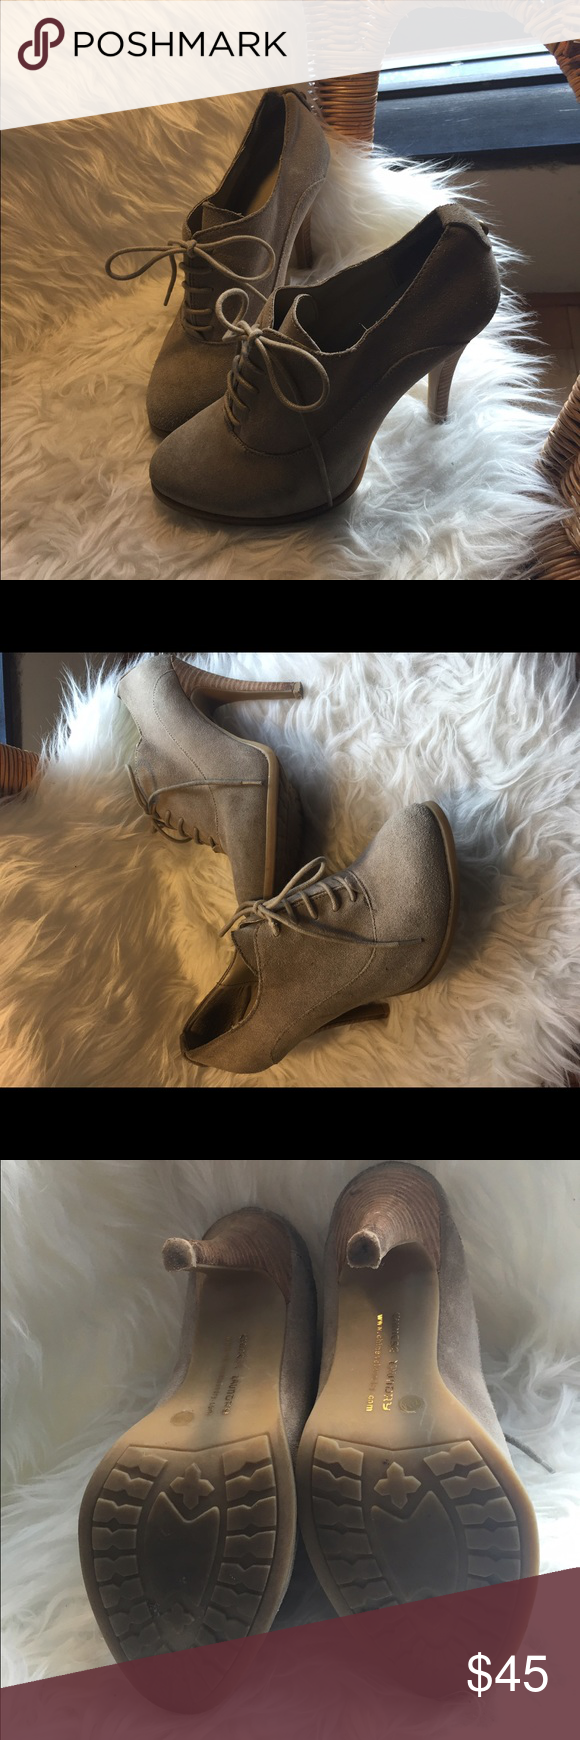 Lannie Bootie Fall 2014 #chineselaundrybooties  Very comfy! neutral color looks great with denim + perfect for the office  (minor scratches on the heel, otherwise great condition) Chinese Laundry Shoes Heeled Boots